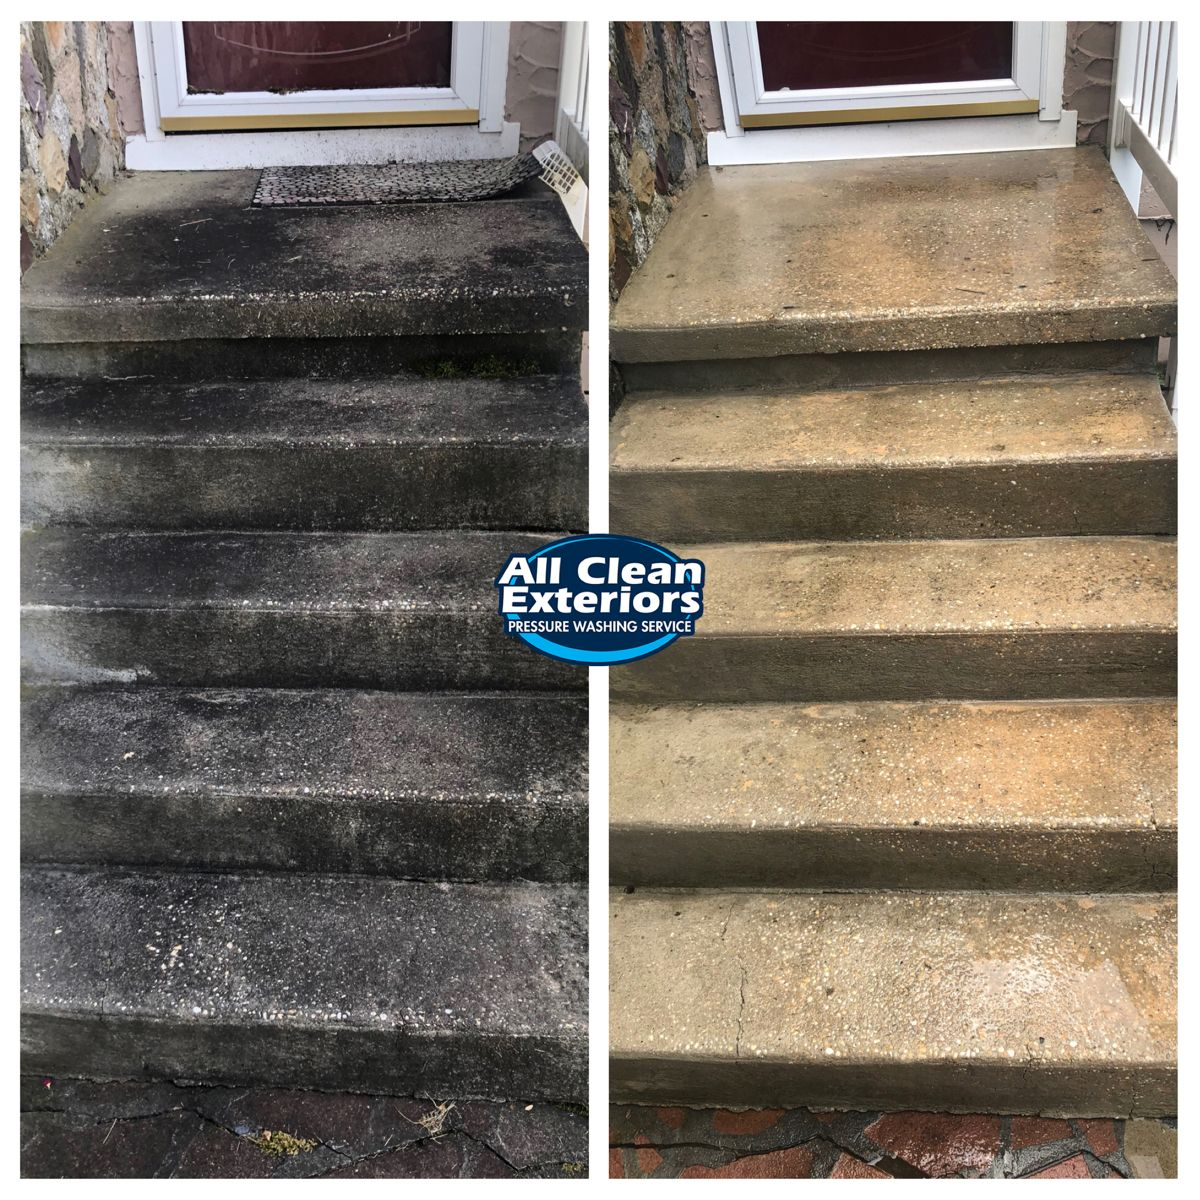 Concrete Steps Before And After In 2020 Cleaning Gutters Concrete Steps Pressure Washing Services